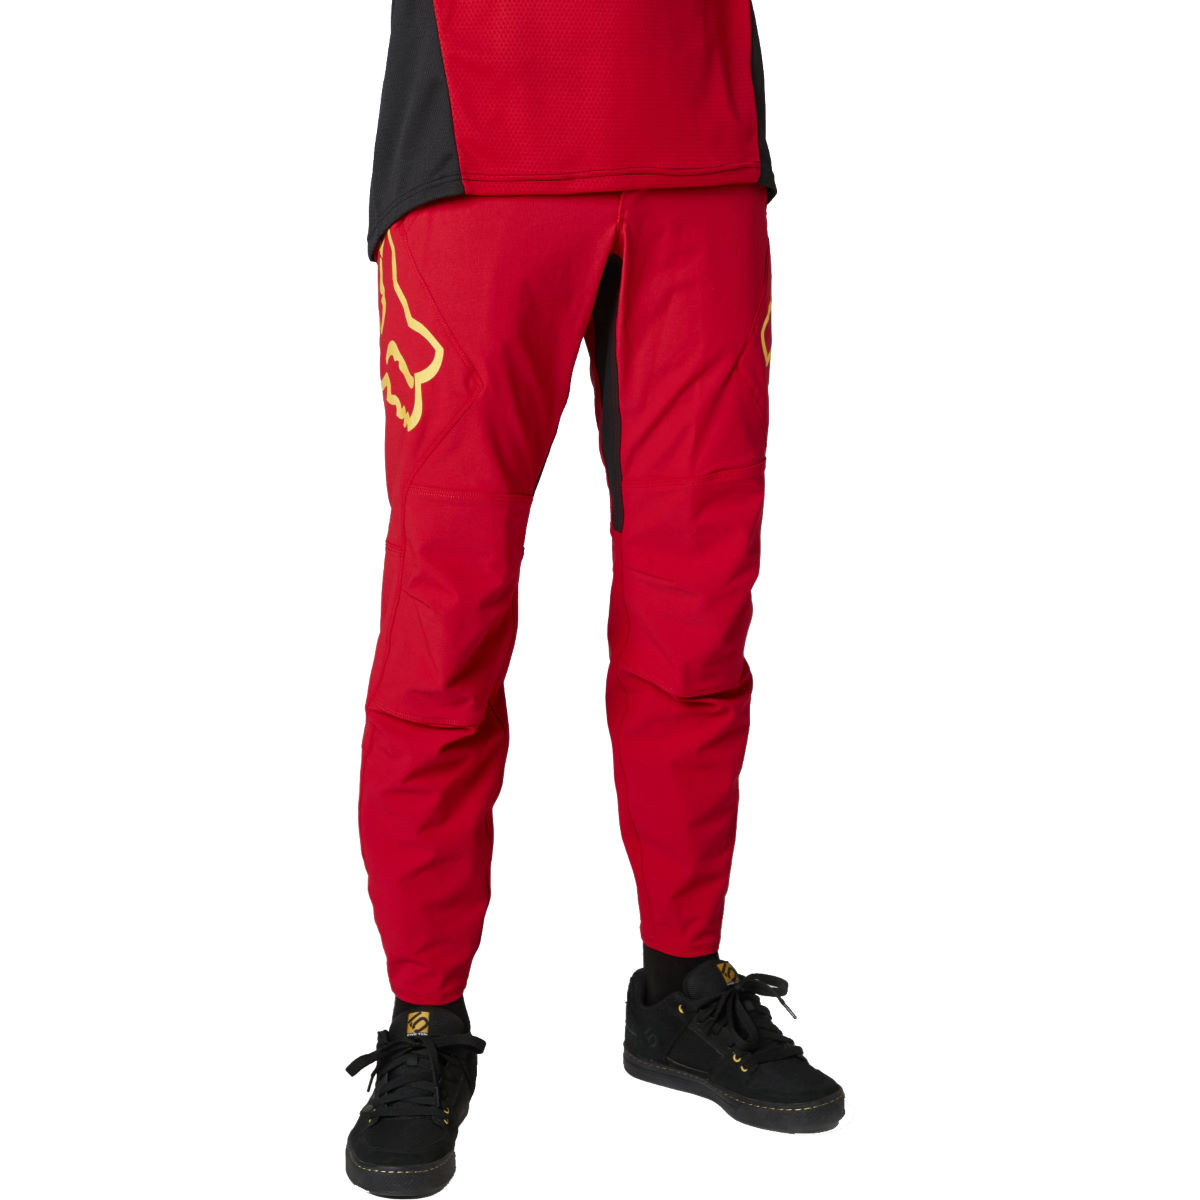 Fox Racing Defend Cycling Trousers Rs - 38 Chili  Trousers